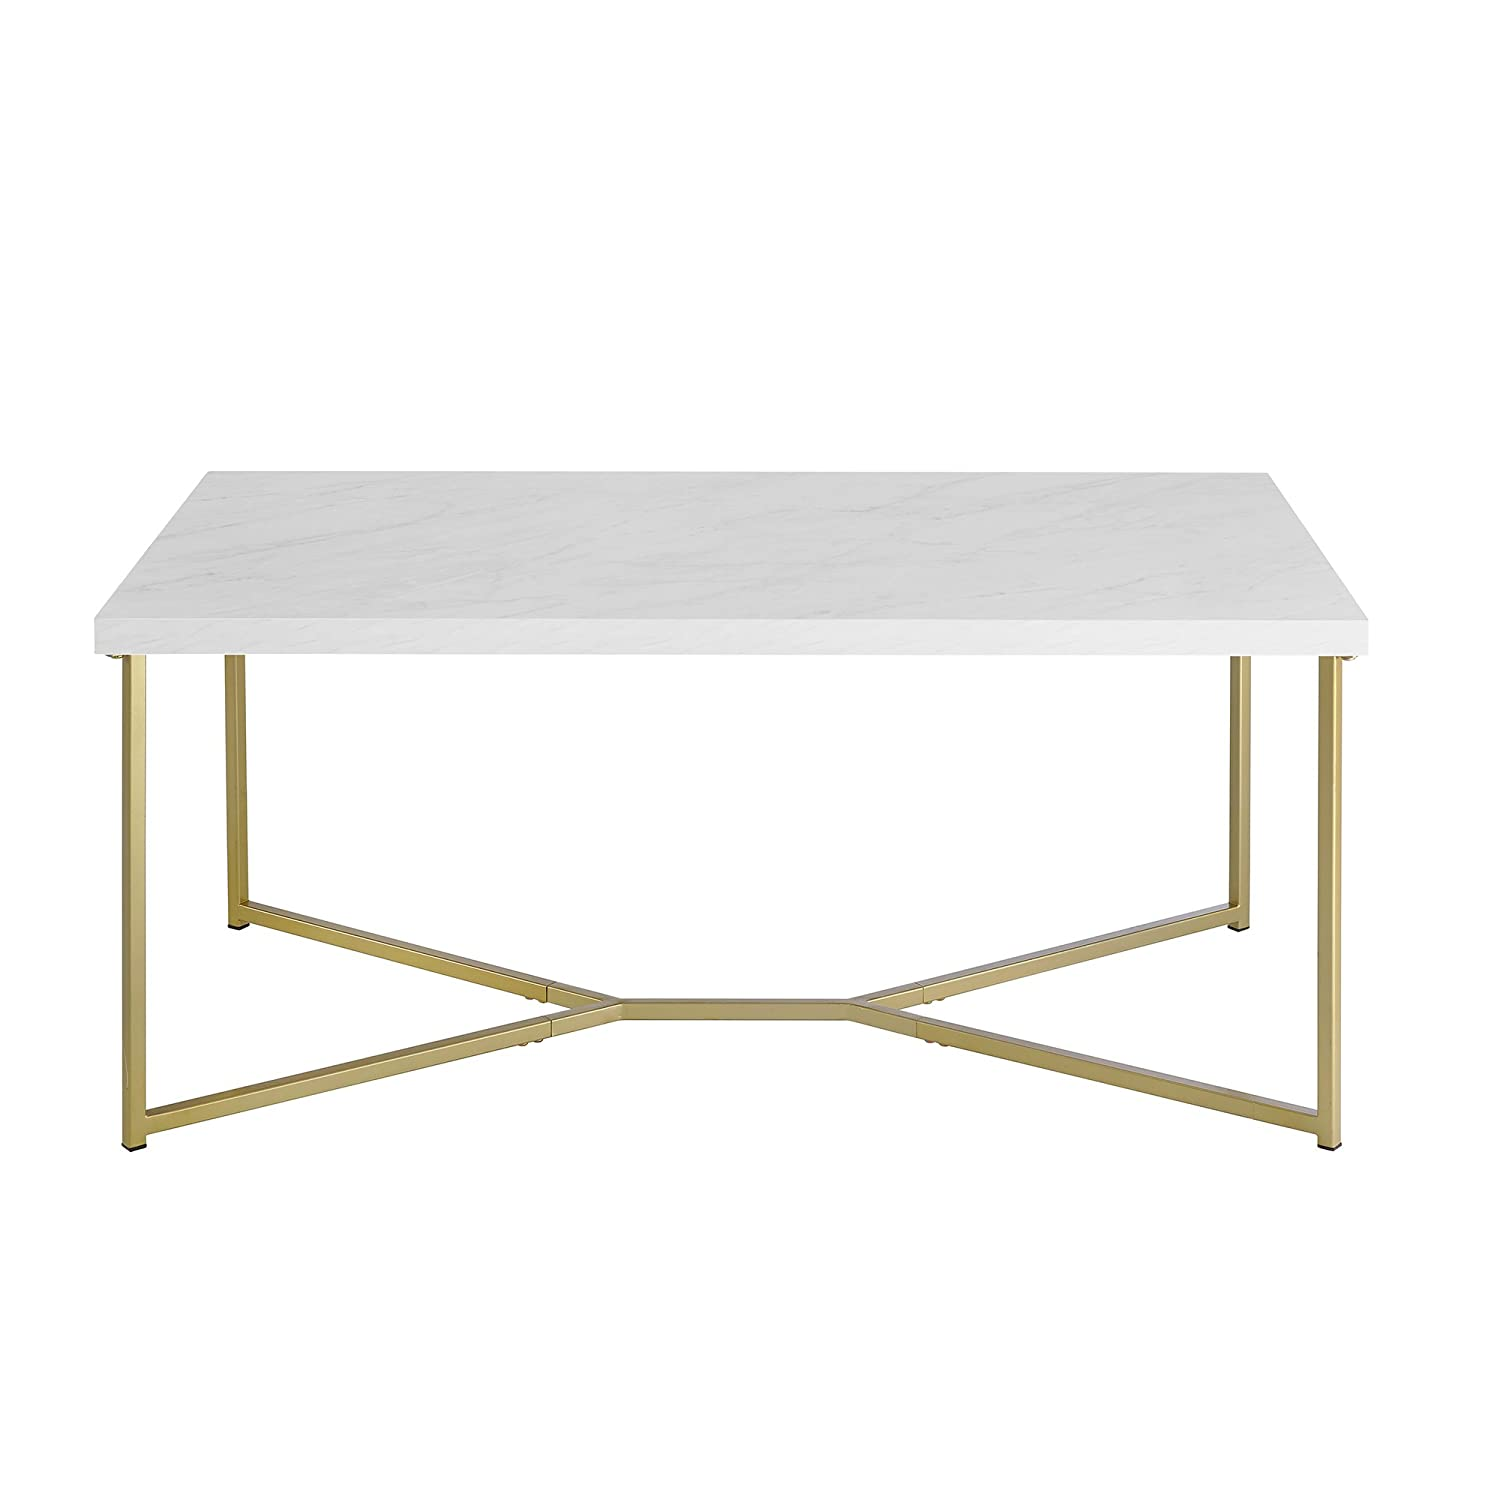 Gold And White Marble Coffee Table.We Furniture Short Rectangular Coffee Table Faux White Marble Top Gold Base